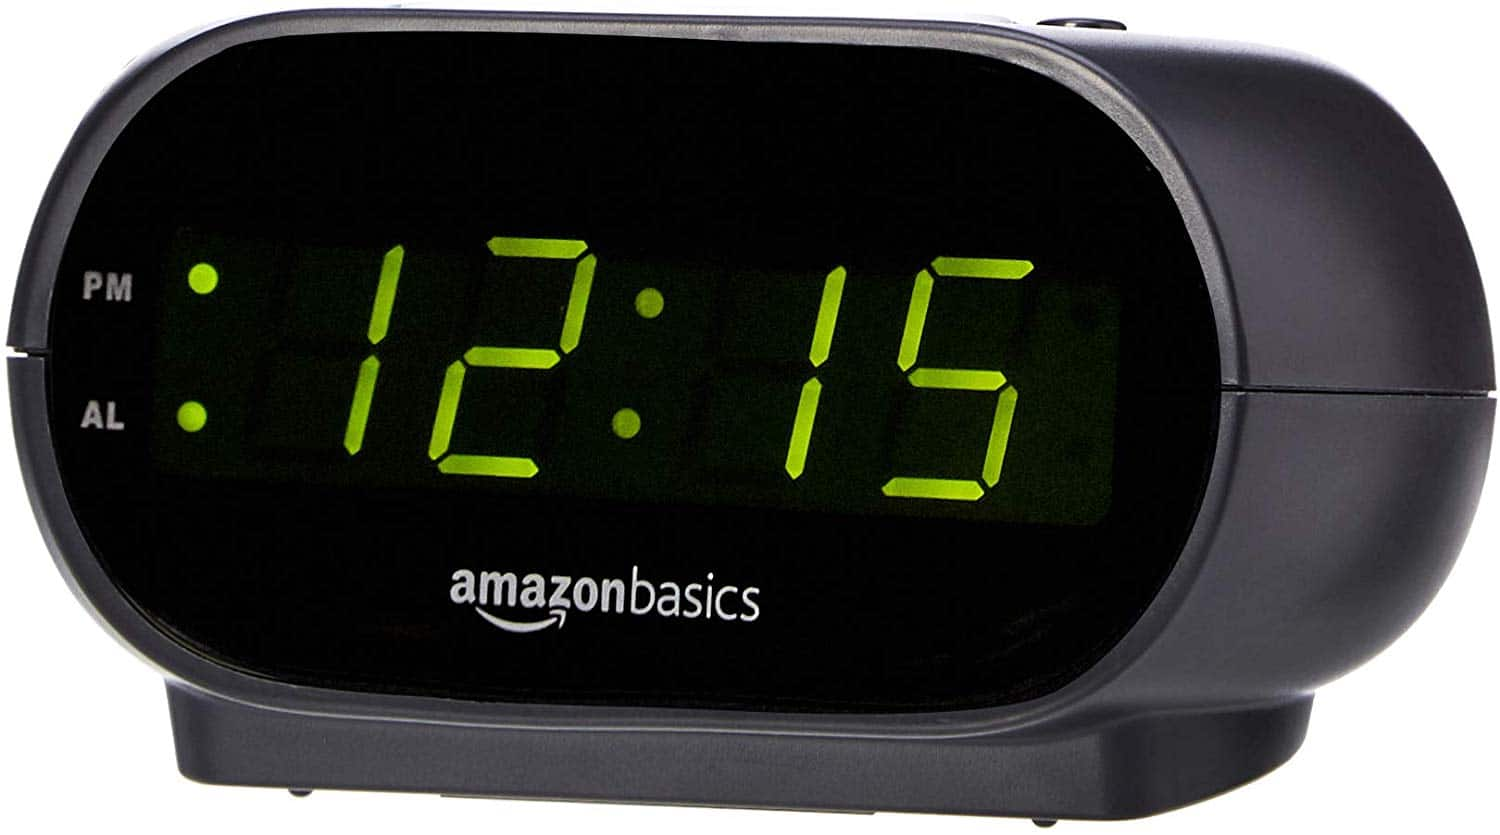 AmazonBasics Clock